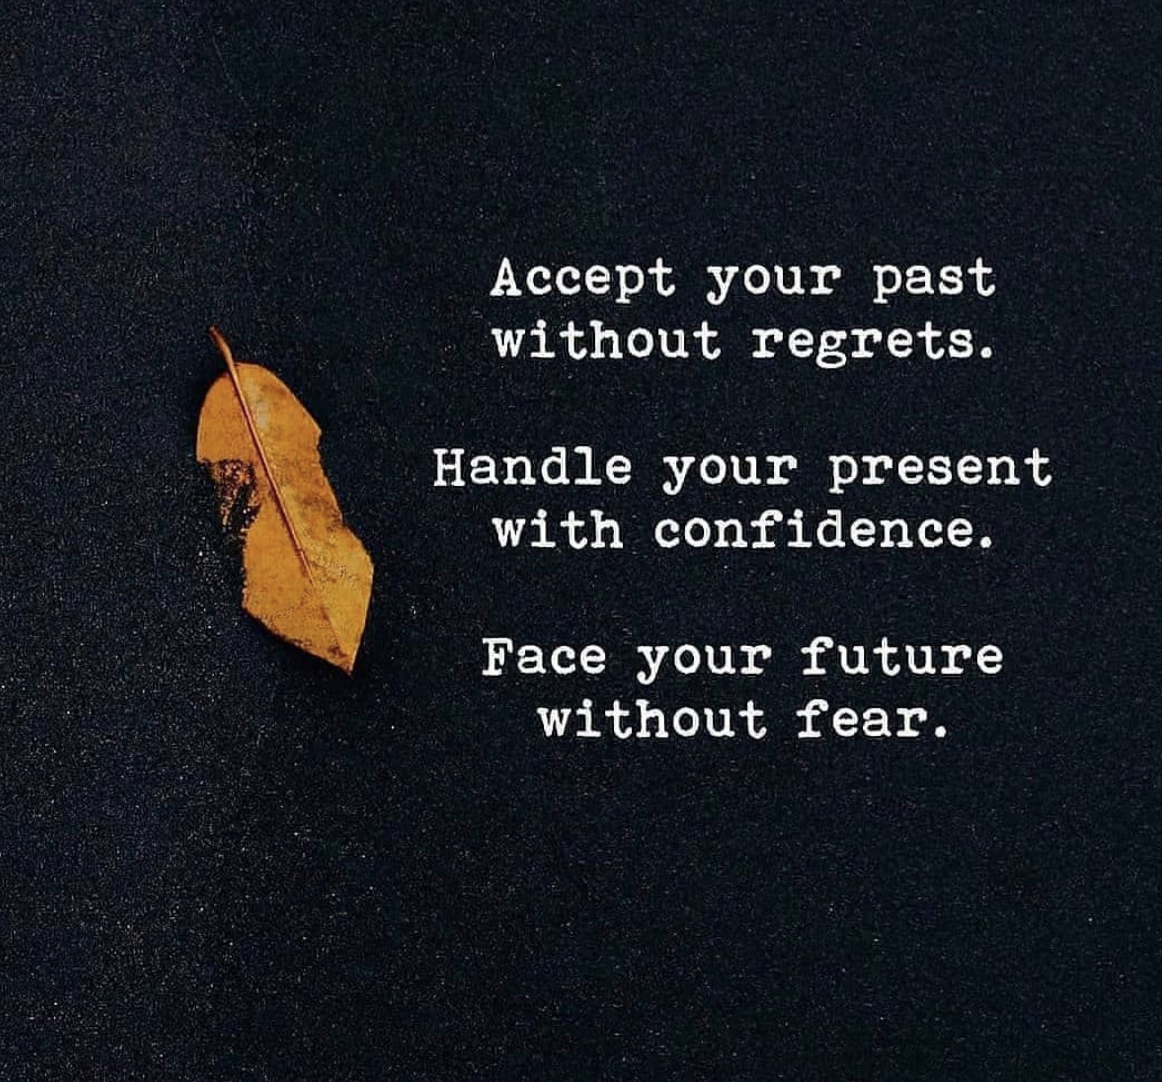 Accept your past . without regrets. Handle your present with confidence. Face your future without fear. https://inspirational.ly